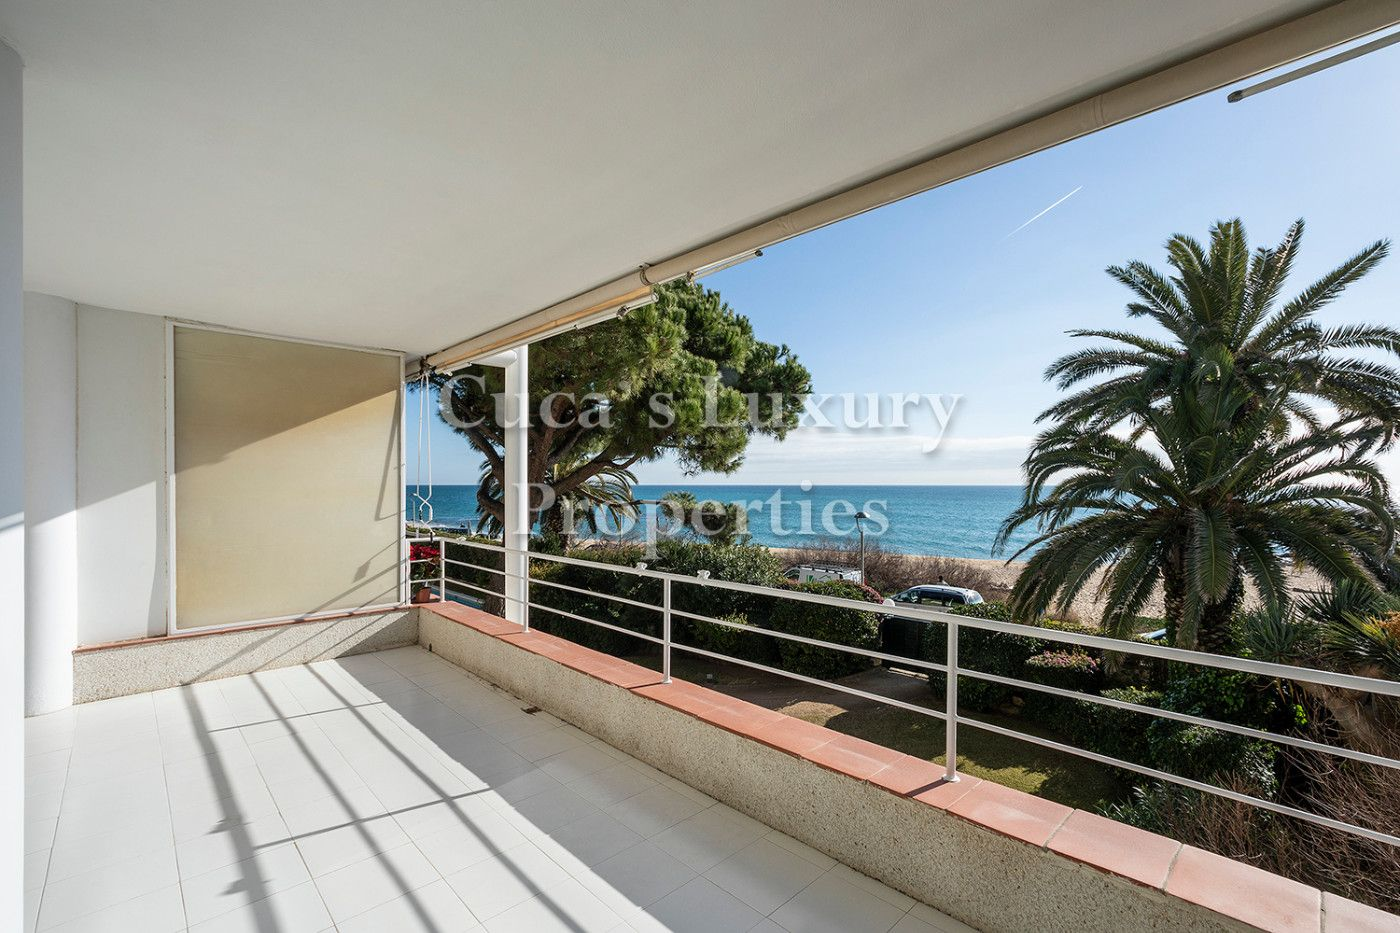 Miete Appartement in Port balis, 47. Paraiso frente al mar